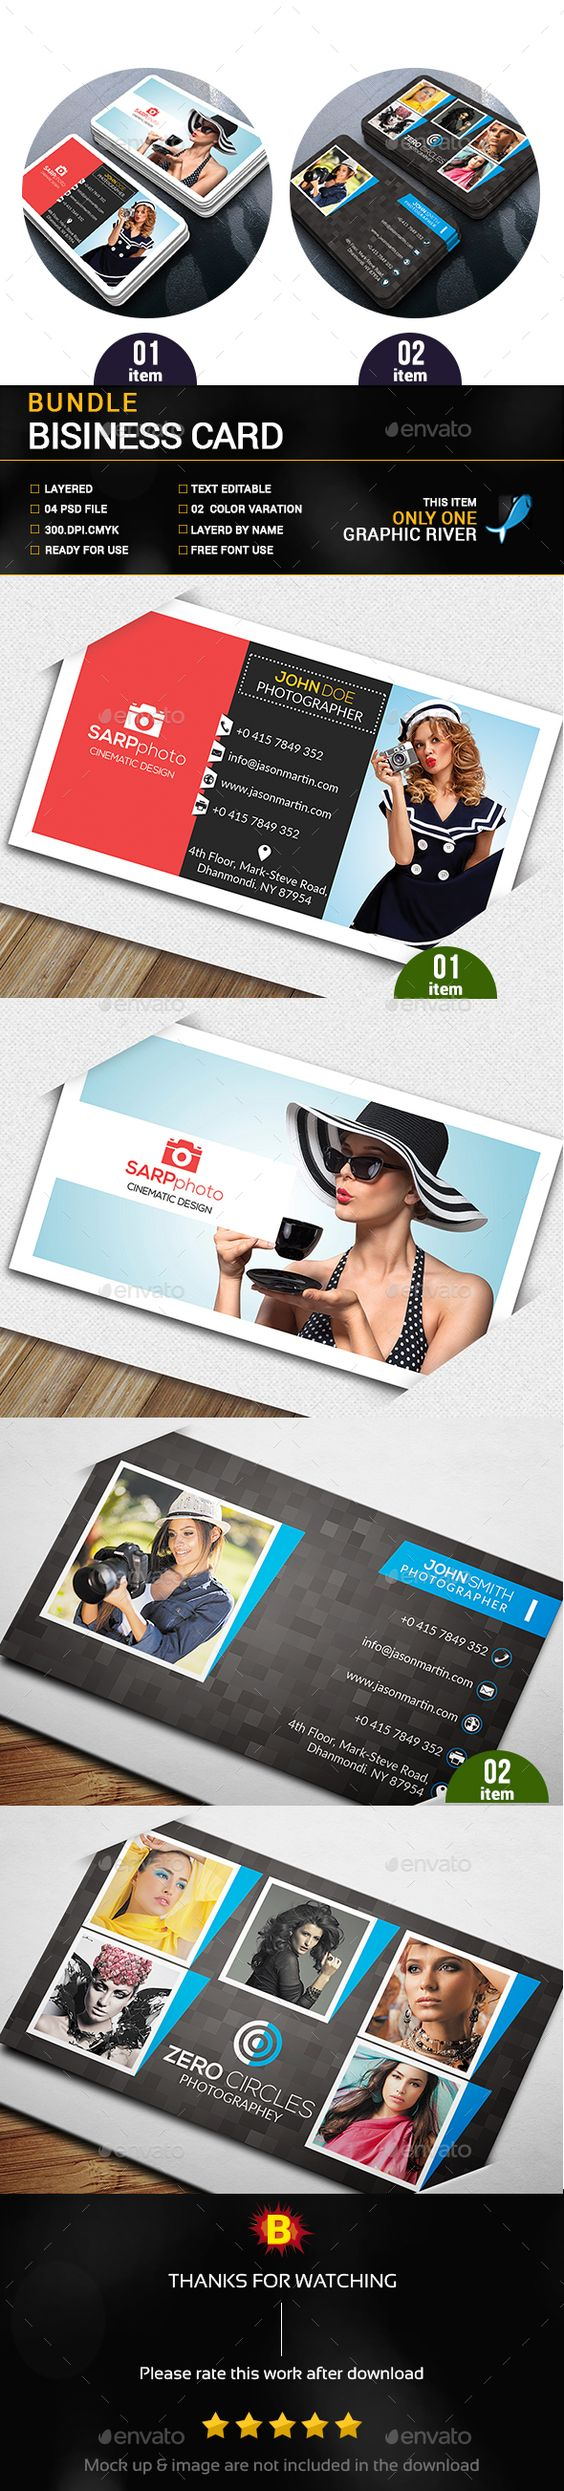 ... photography business photography business templates cards business